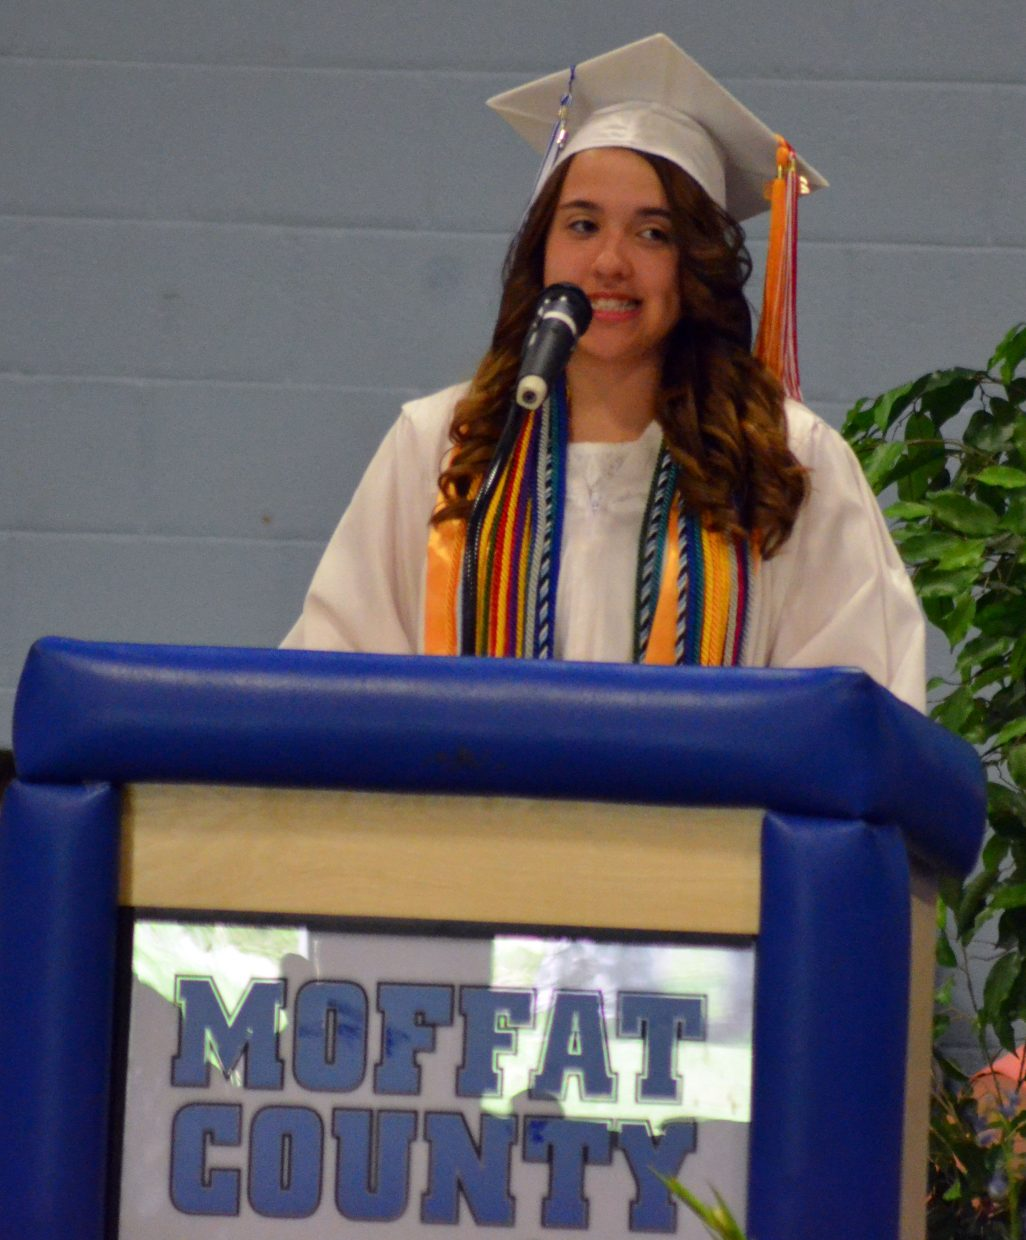 Moffat County High School graduating senior Sheyenne Cromer welcomes the crowd to the Class of 2016 graduation ceremony.